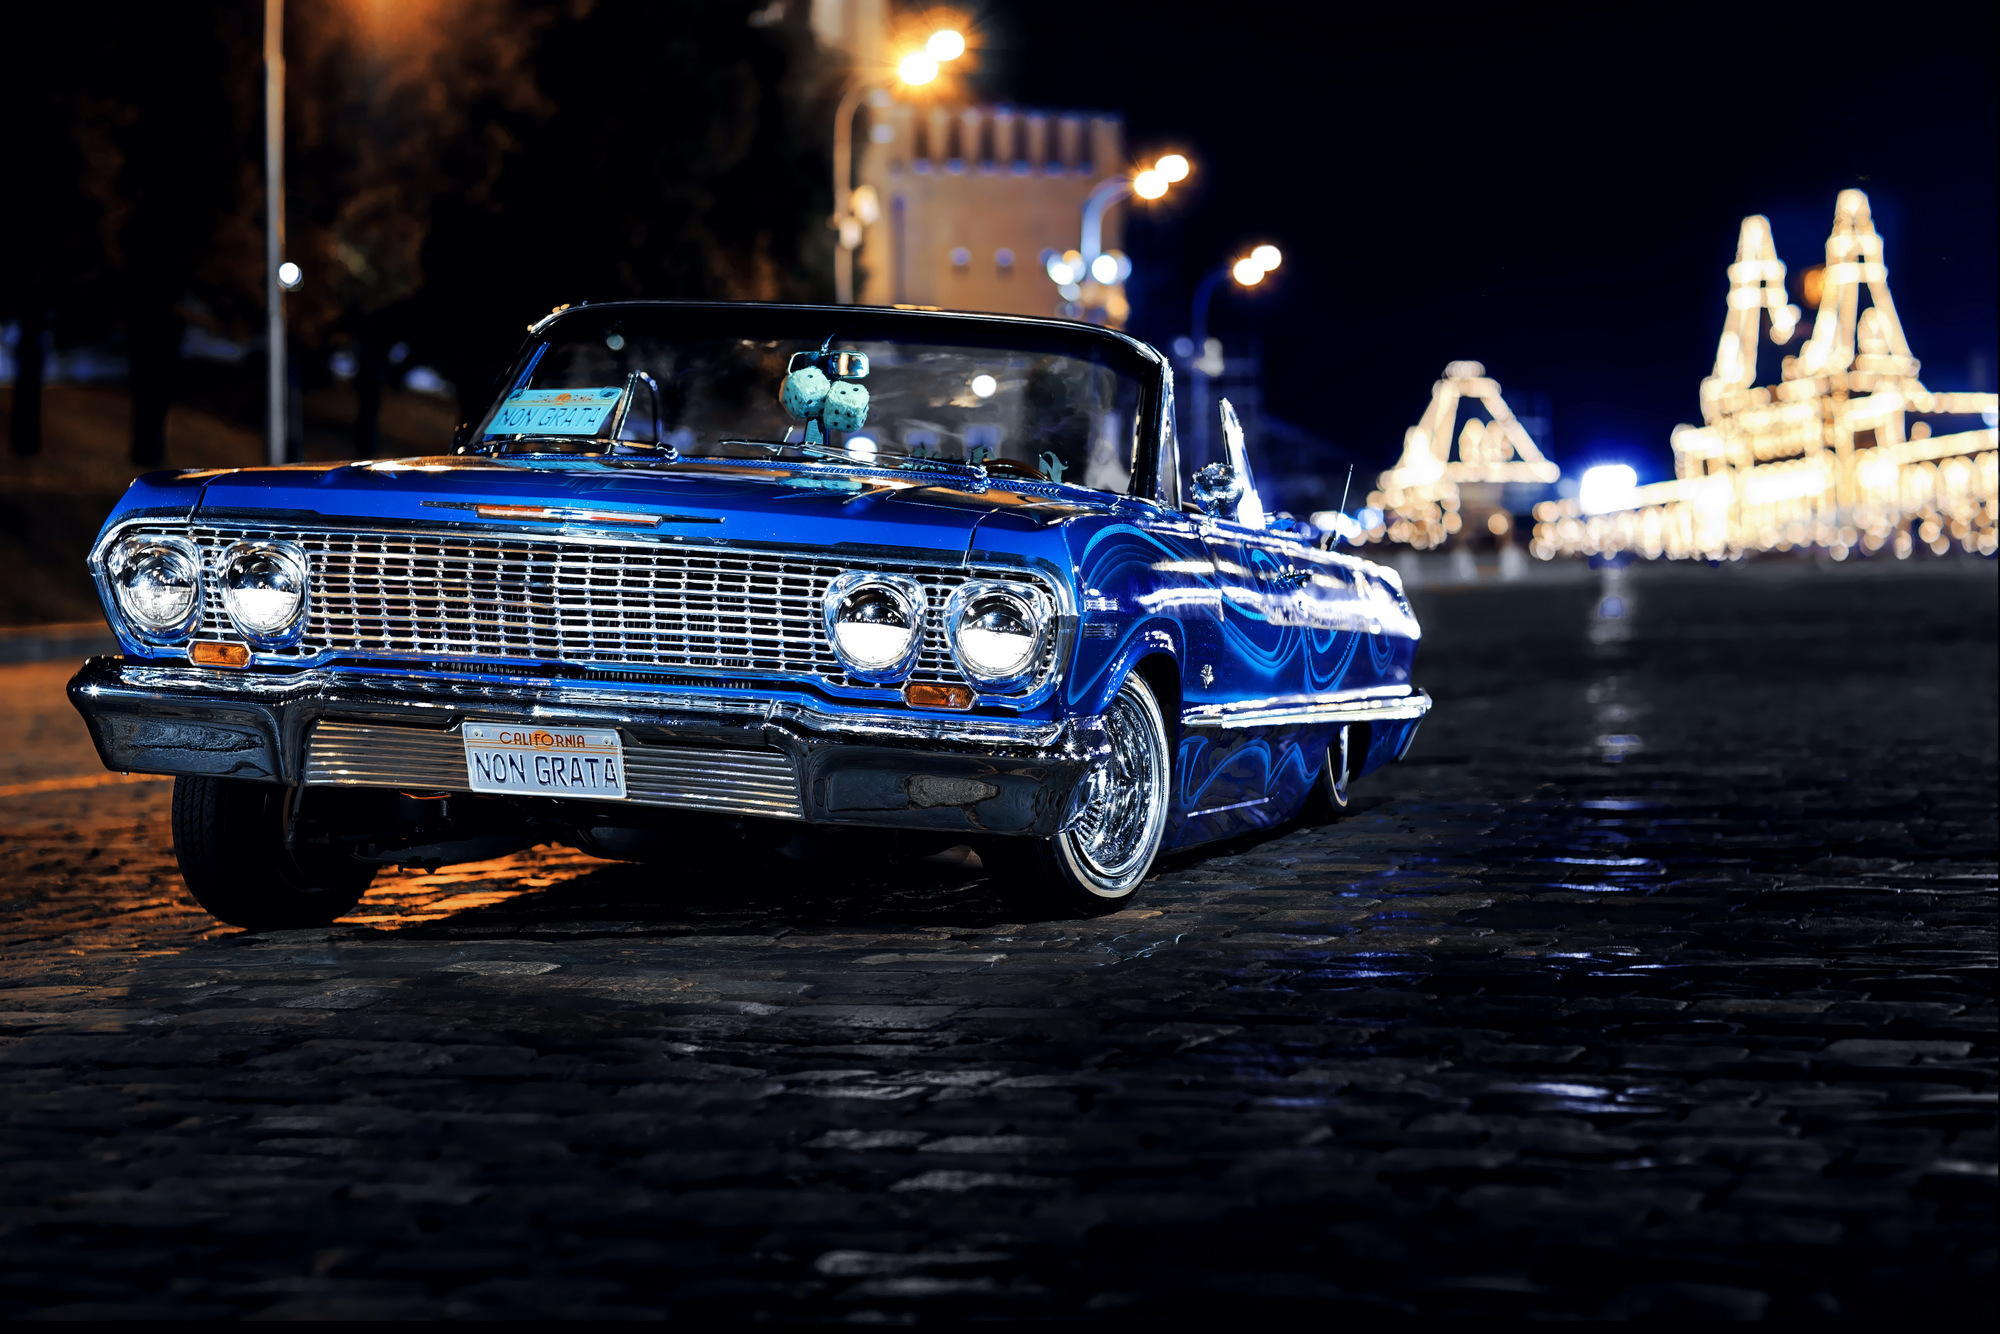 Chevrolet Impala Wallpaper Image Group 36 2000x1334